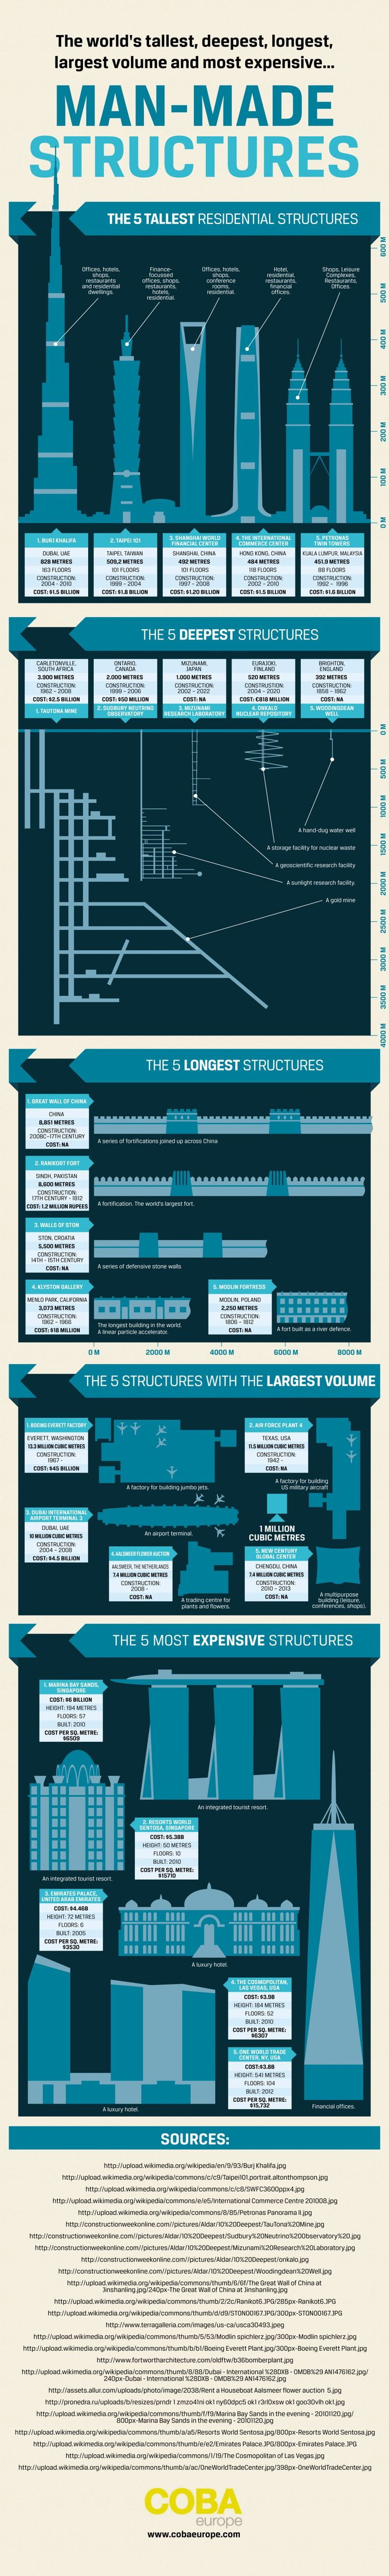 The World's Tallest, Deepest, Longest, Largest Volume and Most Expensive... Man-Made Structures Infographic